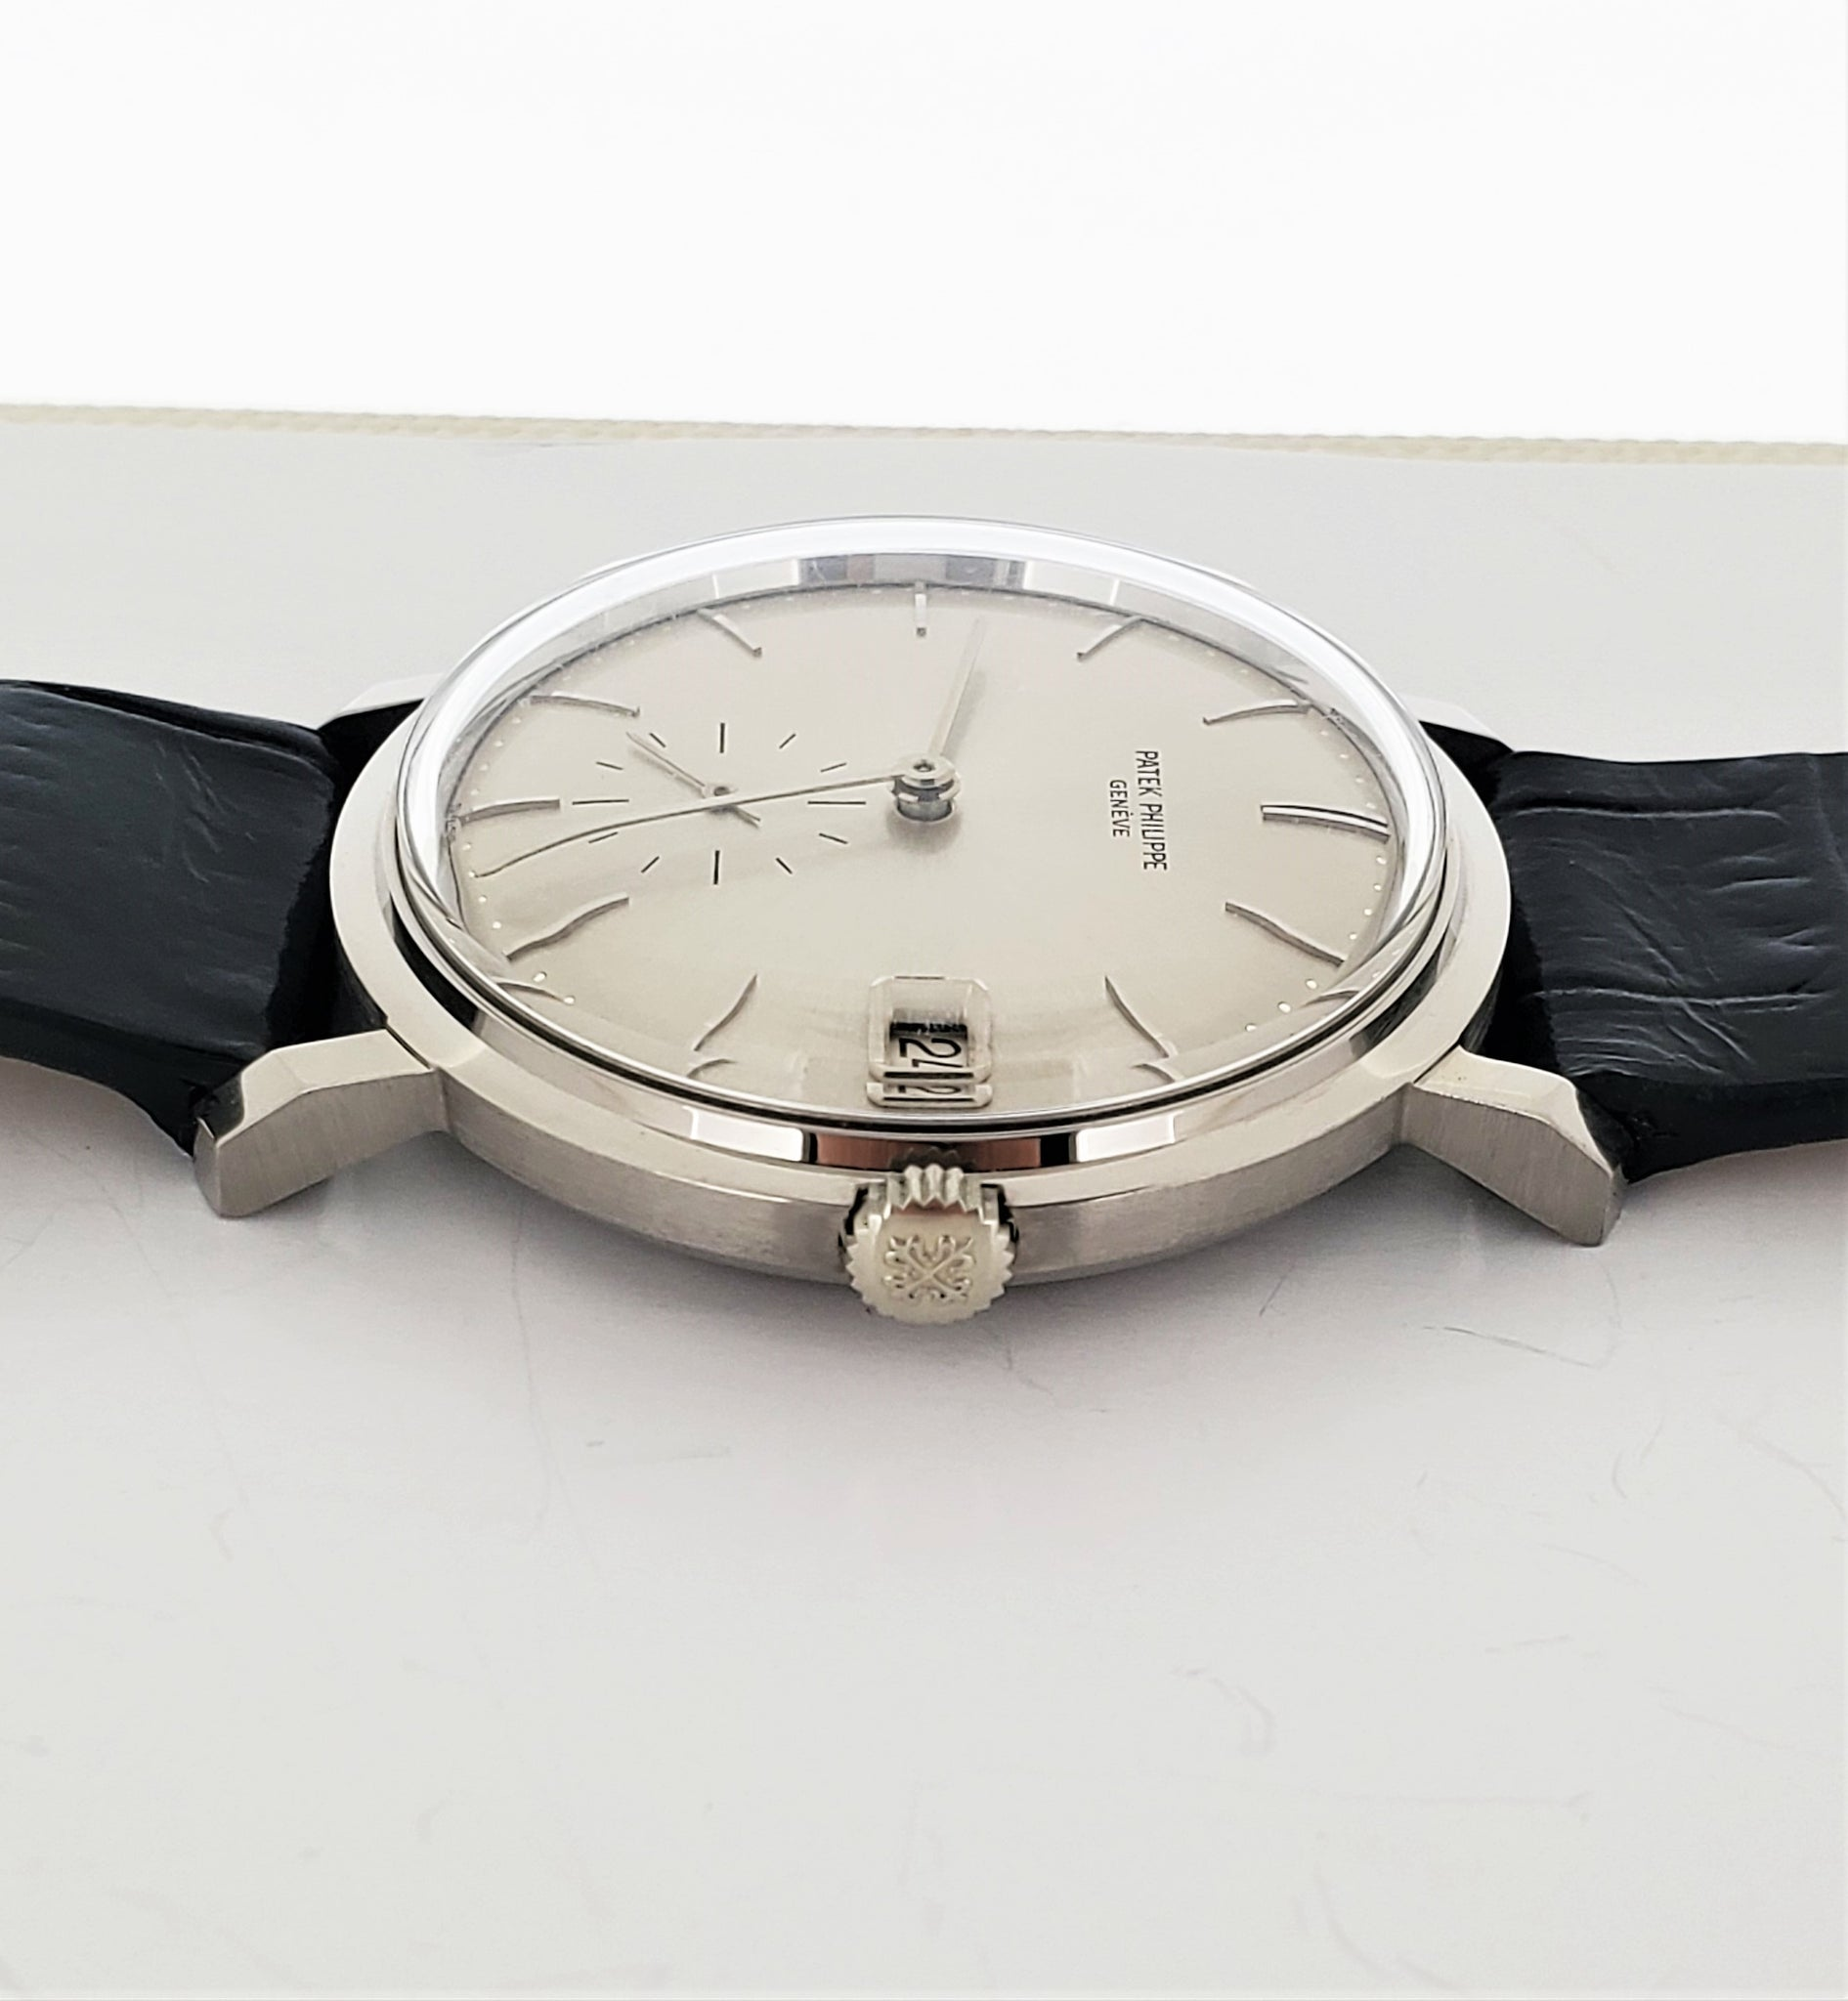 Patek Philippe 3445G Automatic Calatrava Watch